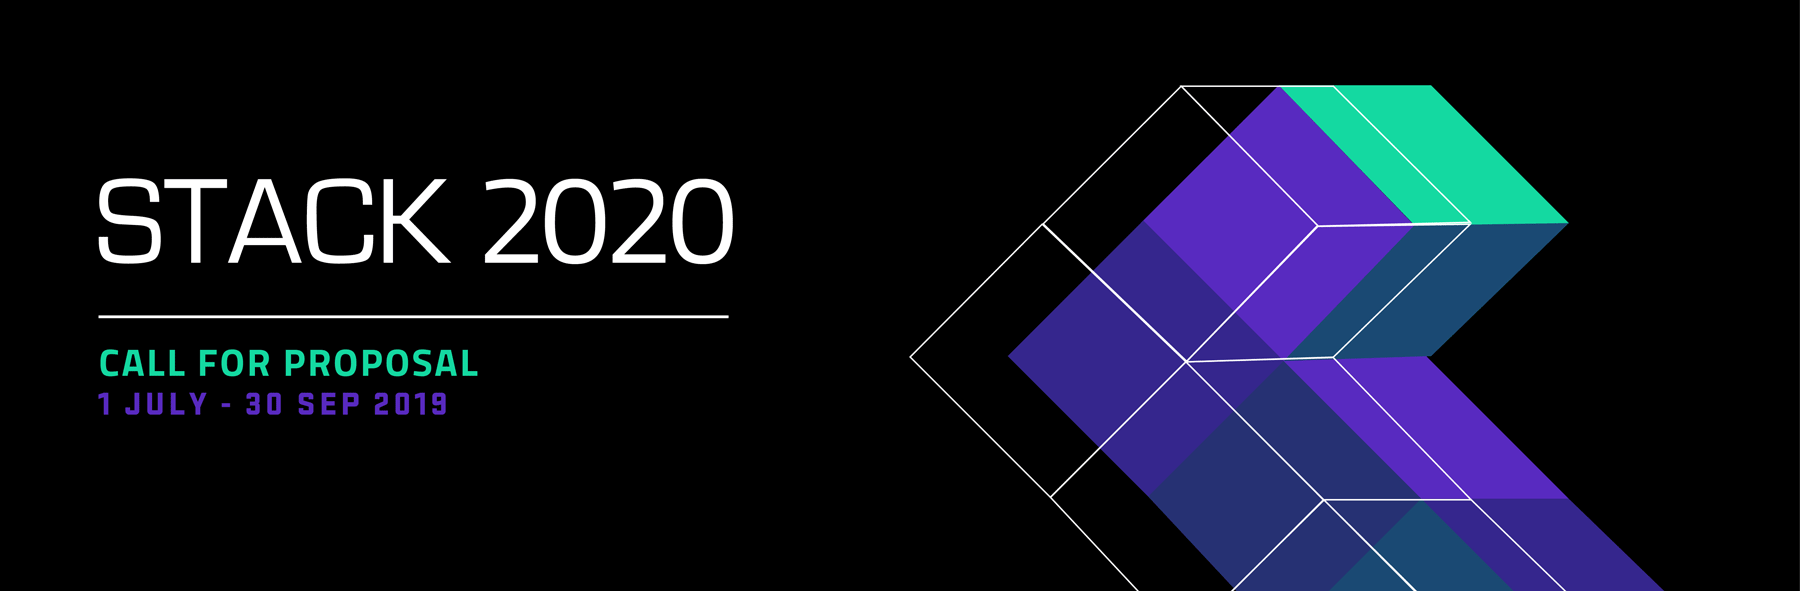 STACK 2020 Call for Proposal